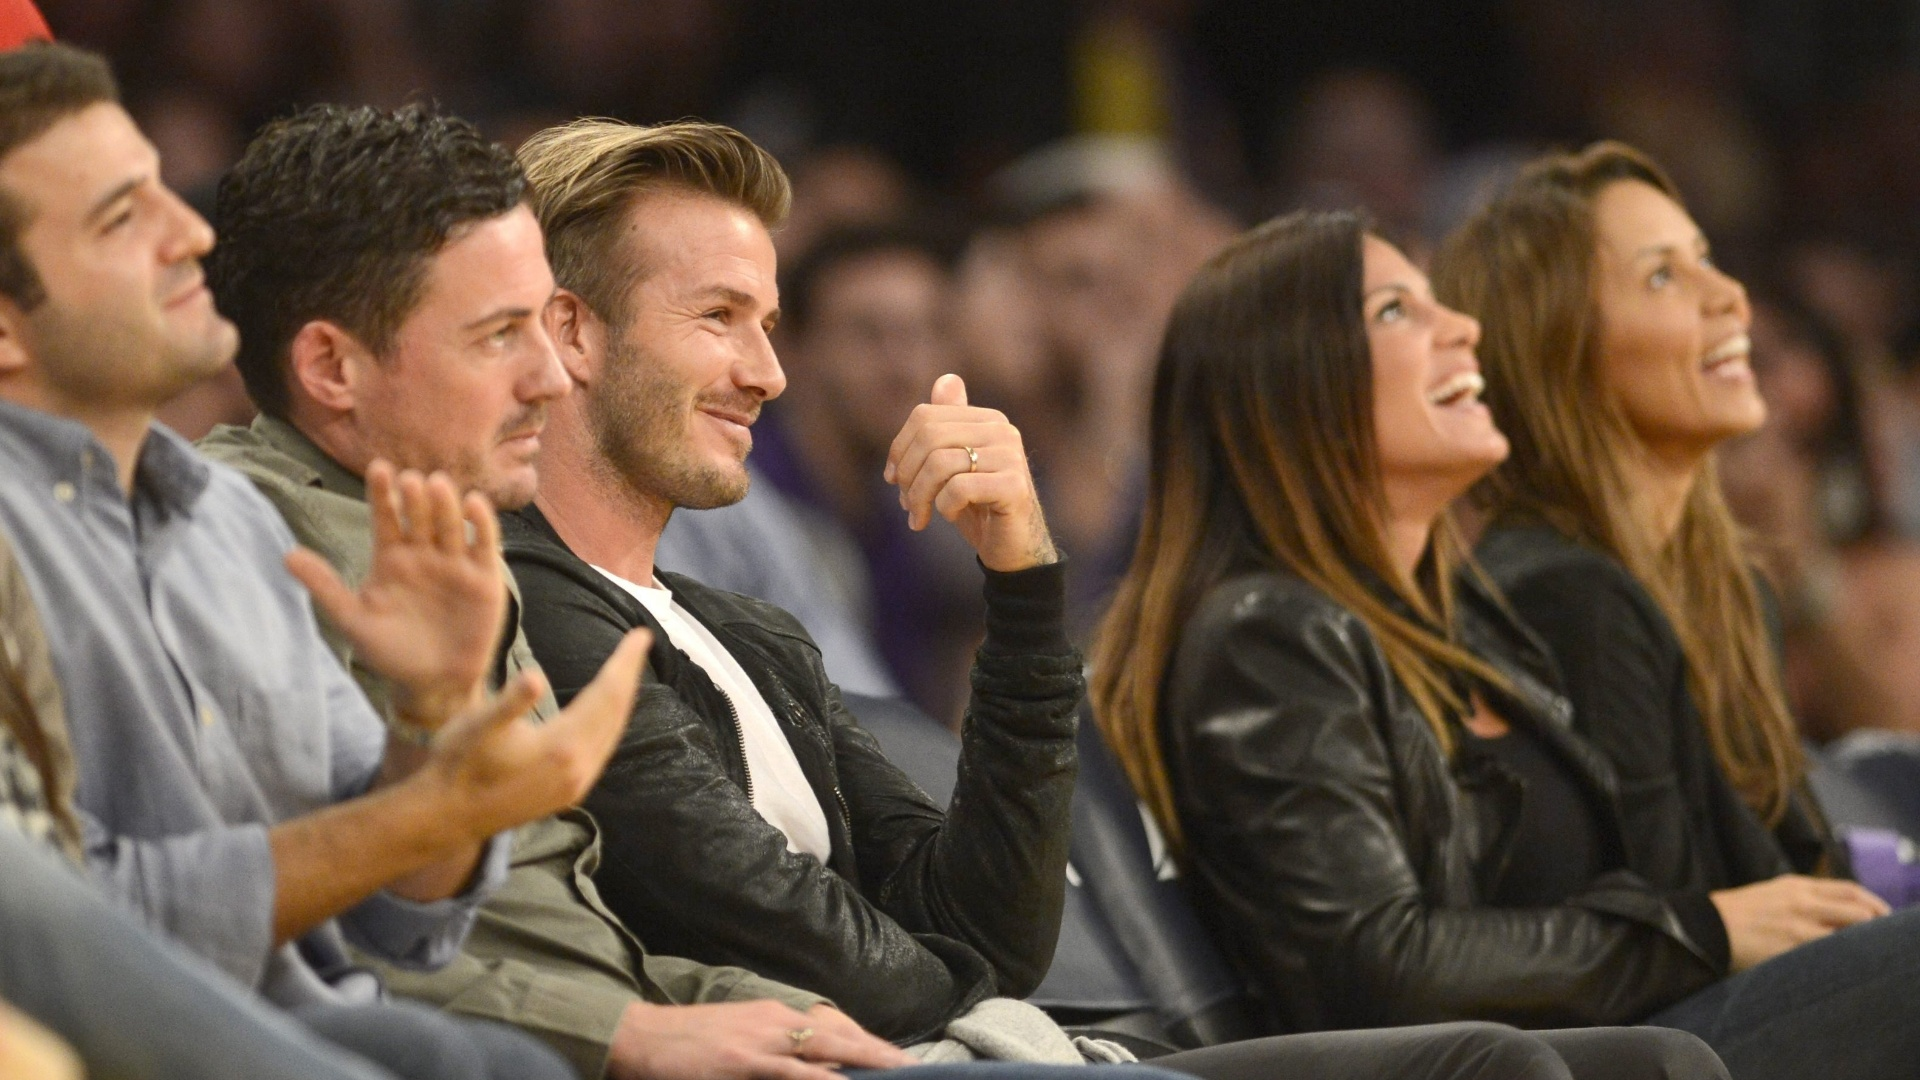 Jogador inglês David Beckham assiste partida entra o Los Angeles Lakers contra o Orlando Magic no Staples Center, em Los Angeles